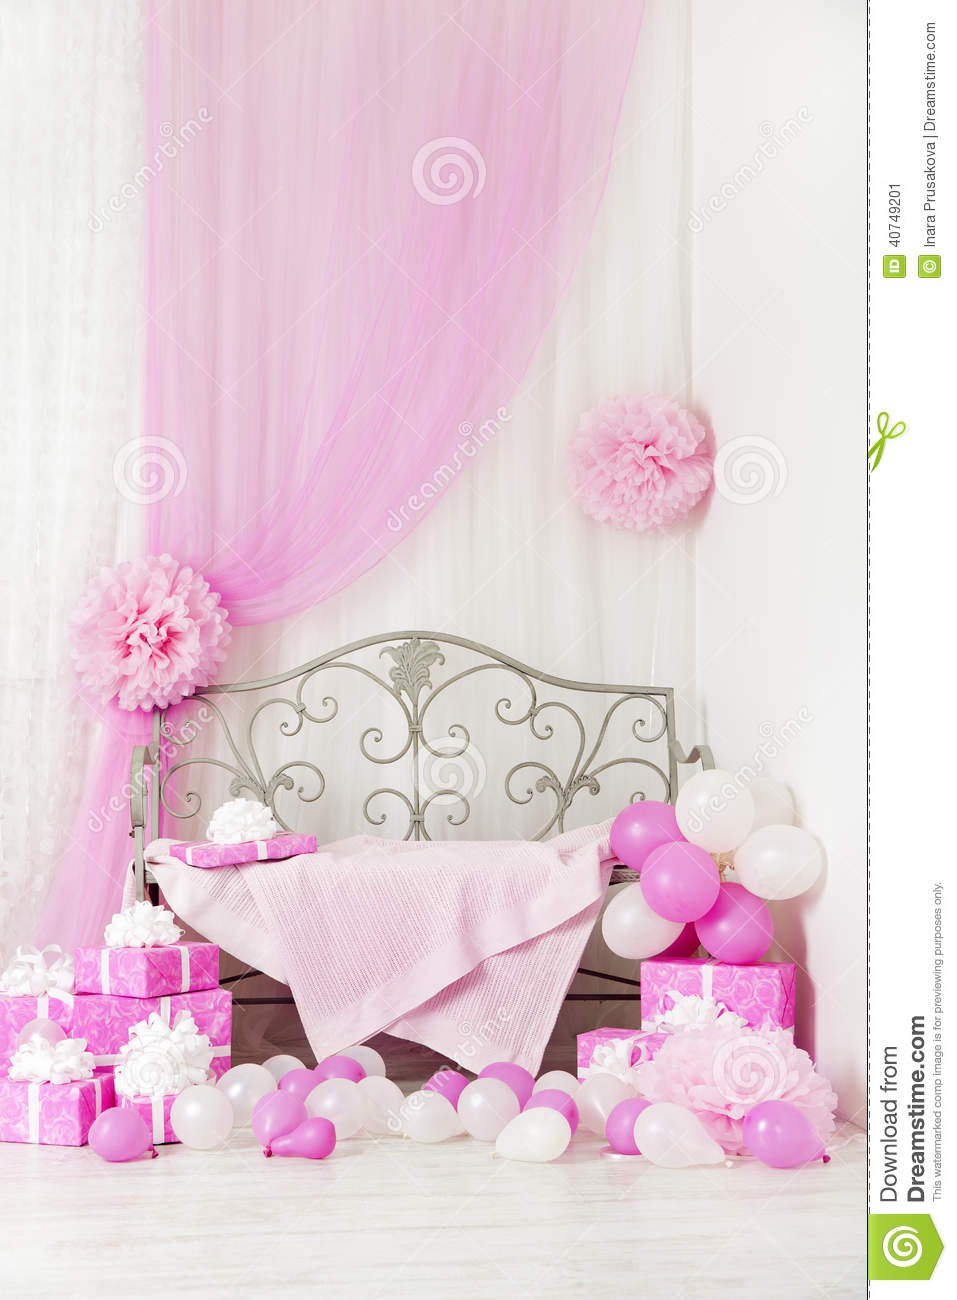 Children S Party Box Wall Art For Girl S Bedroom: Birthday Party Room Background With Gift Boxes. Kids